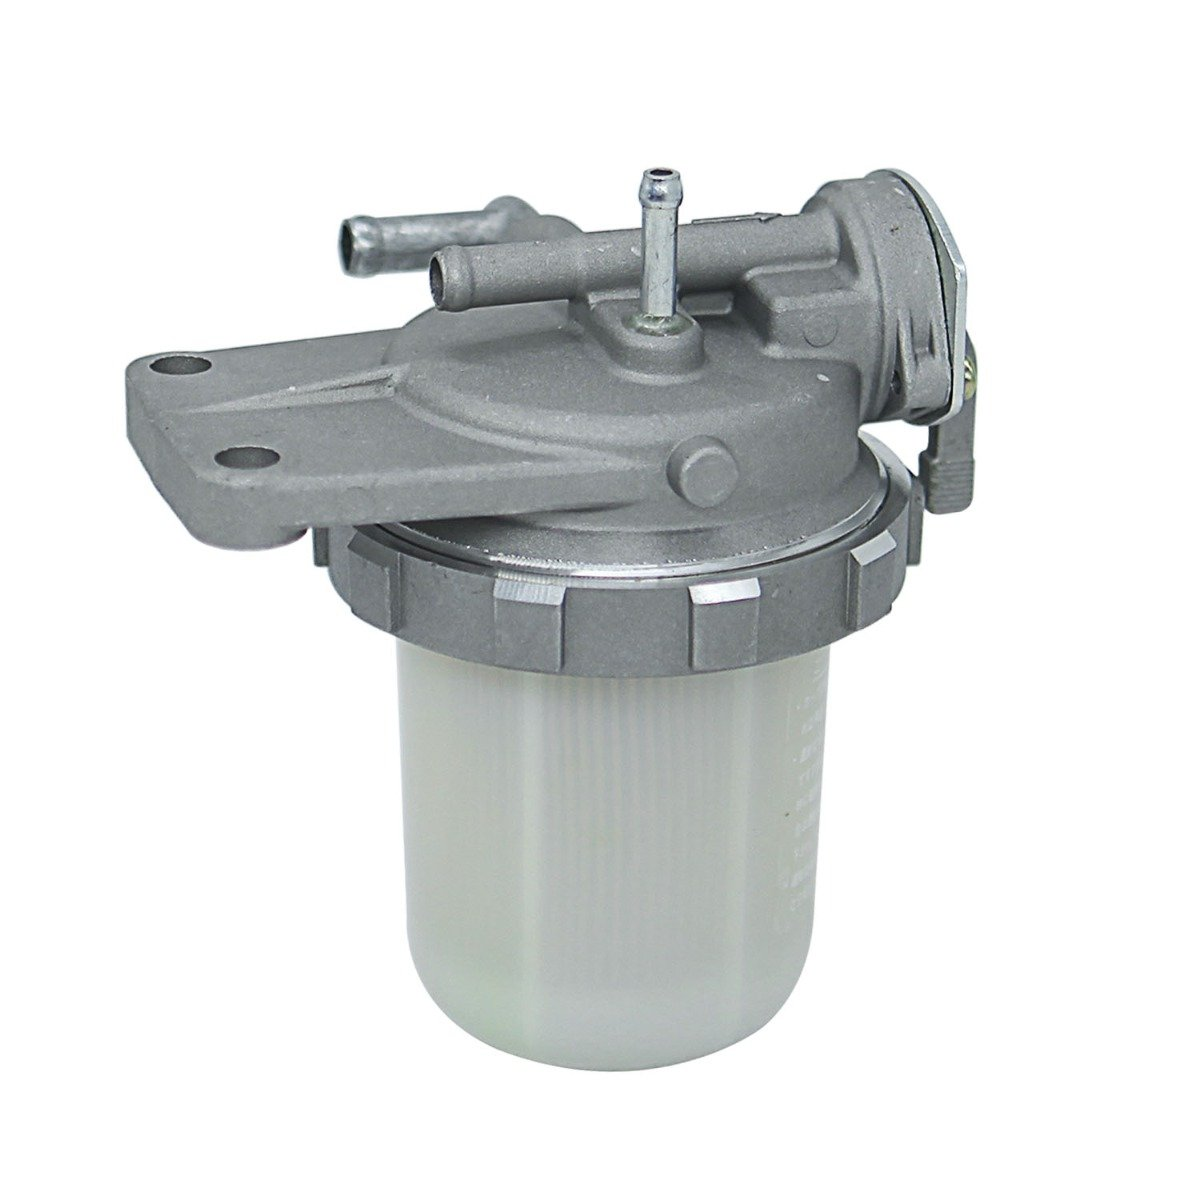 Fuel Filter Assembly 1A001-43010 Compatible With Kubota Generator Diesel SQ-1140-USA SQ-1200-USA SQ-3170-USA SQ-3250-USA-SW